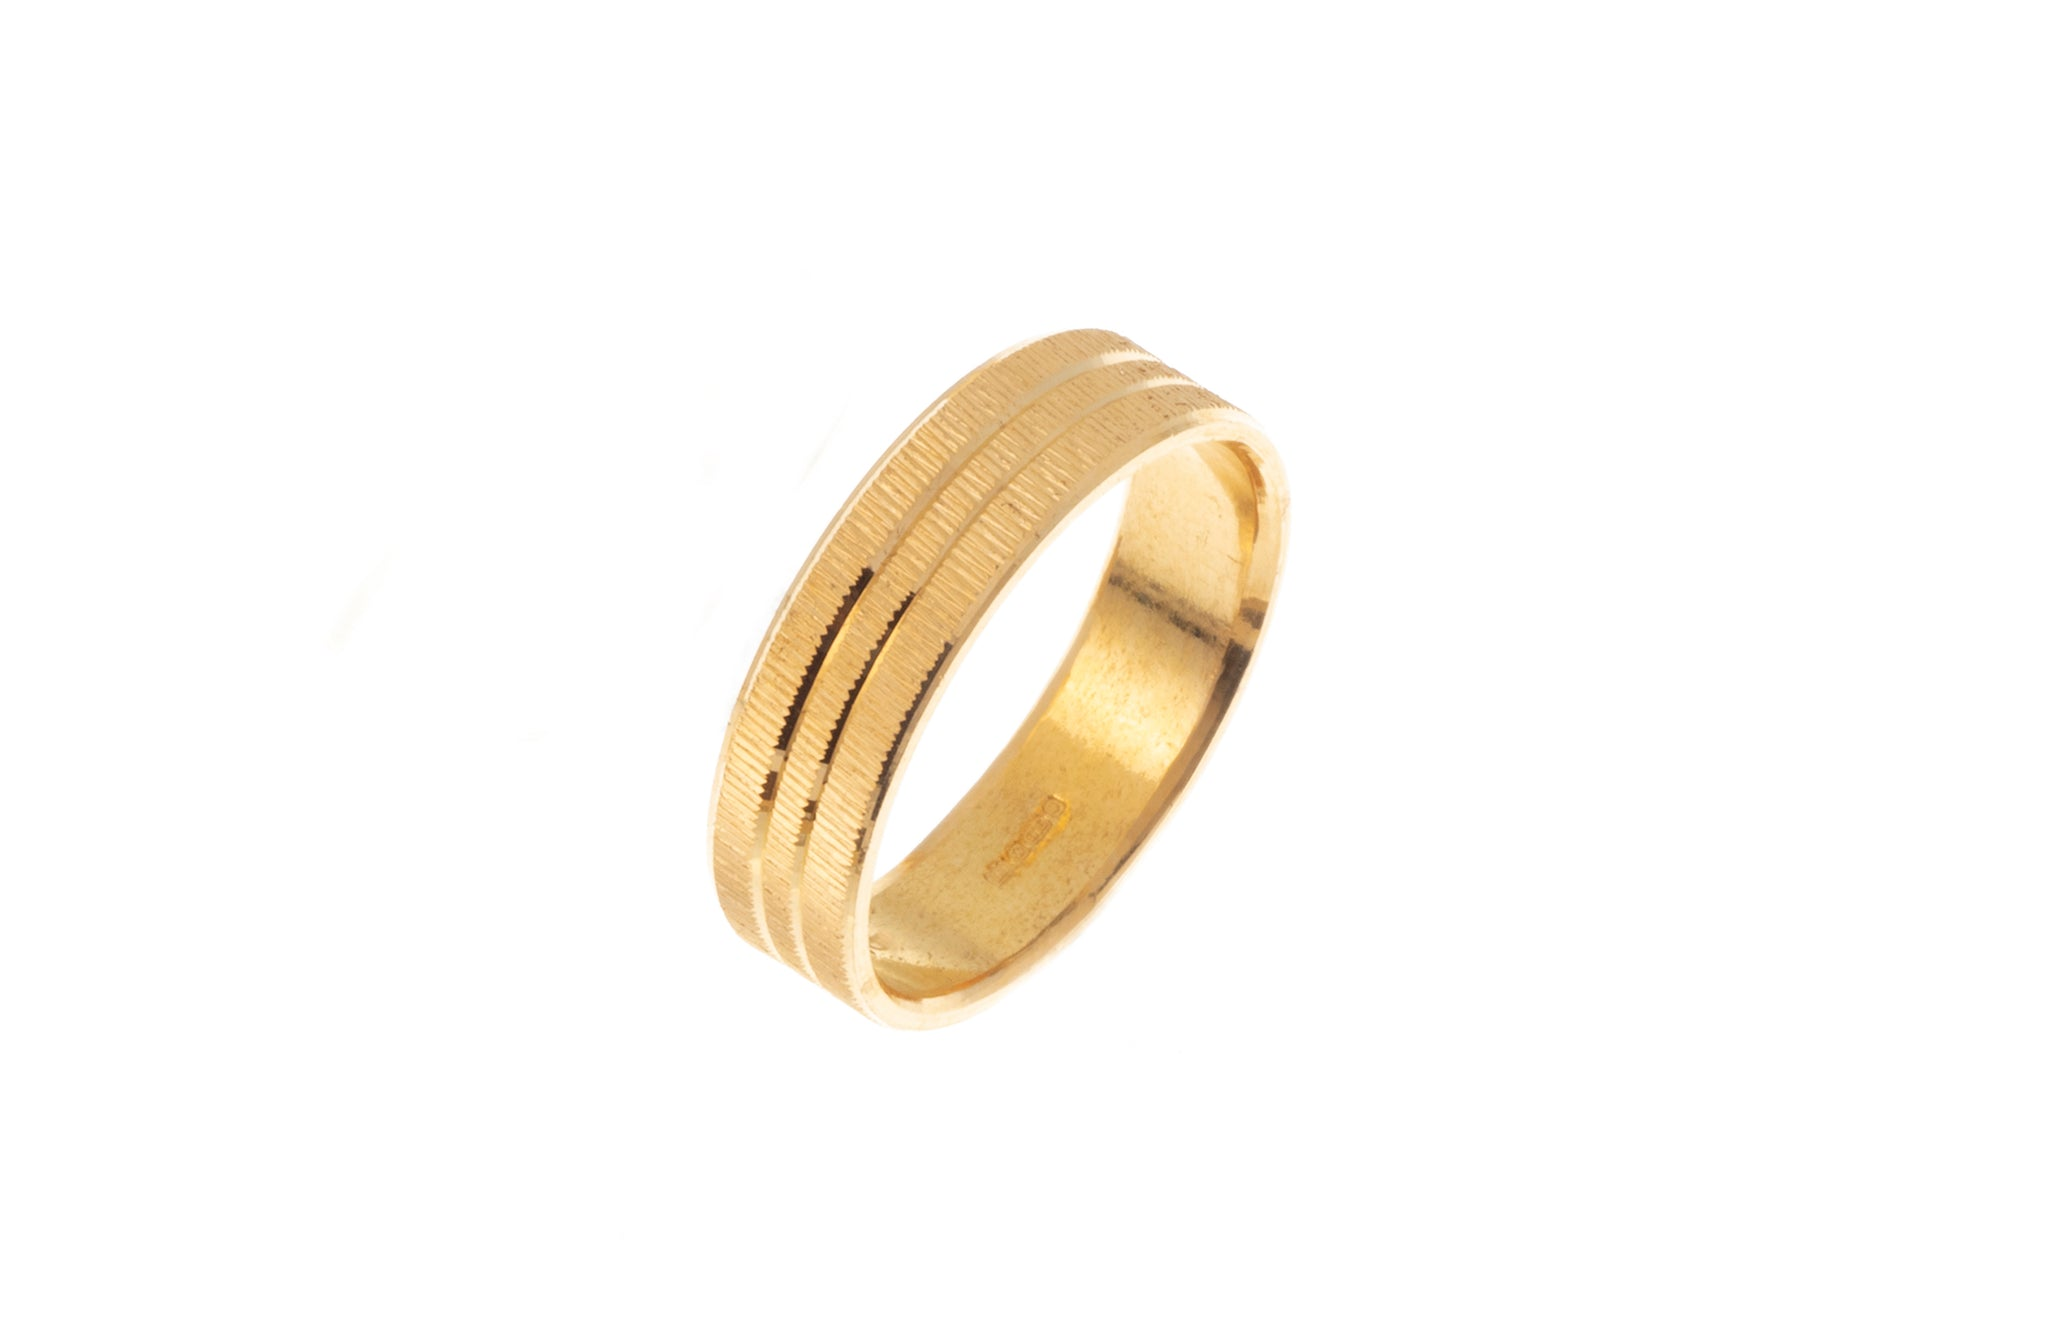 22ct Gold Wedding Band with Diamond Cut Design LR/GR-7372